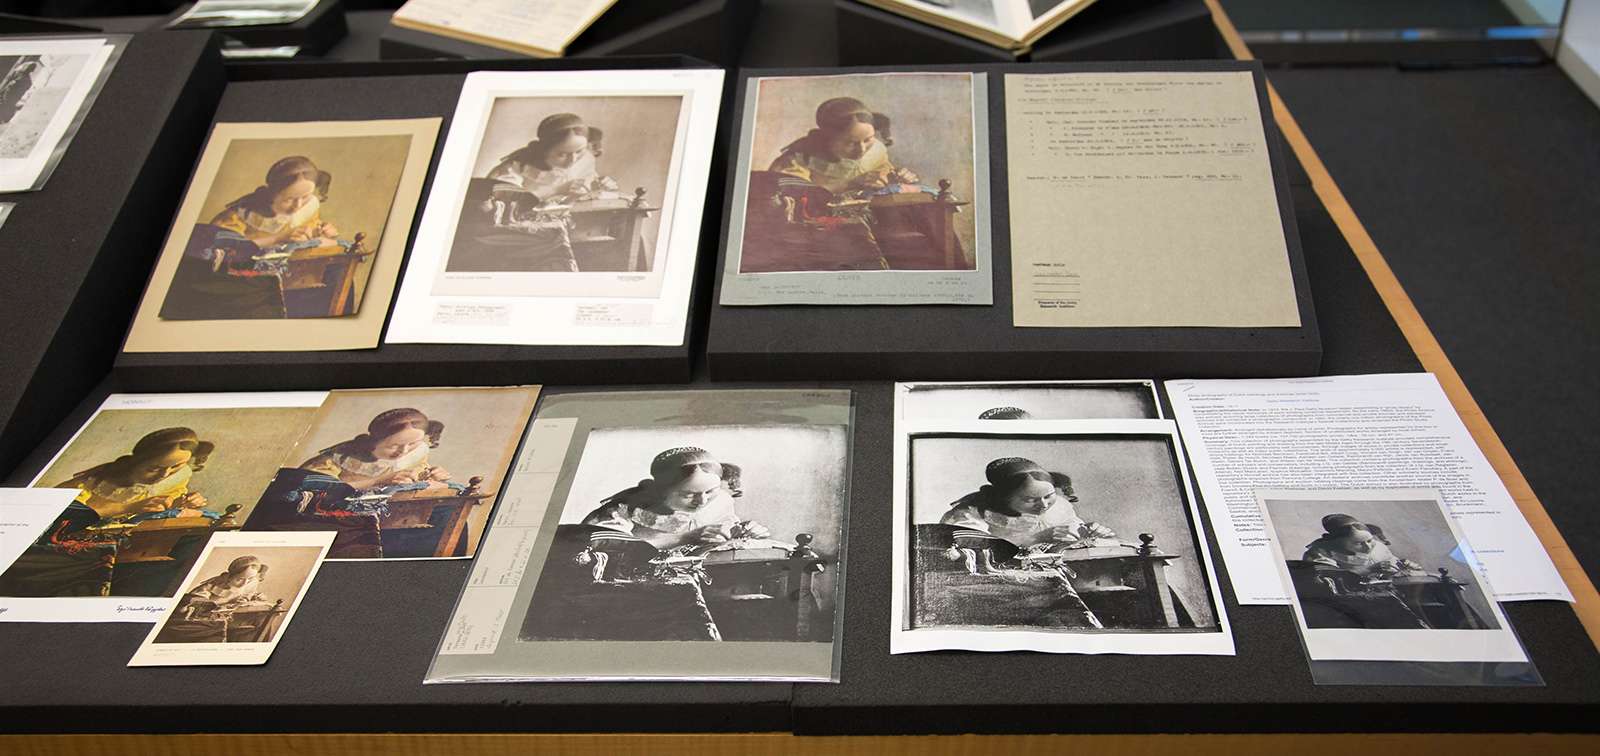 An array of reproductive photos and prints of a Vermeer painting are arrayed on a study table